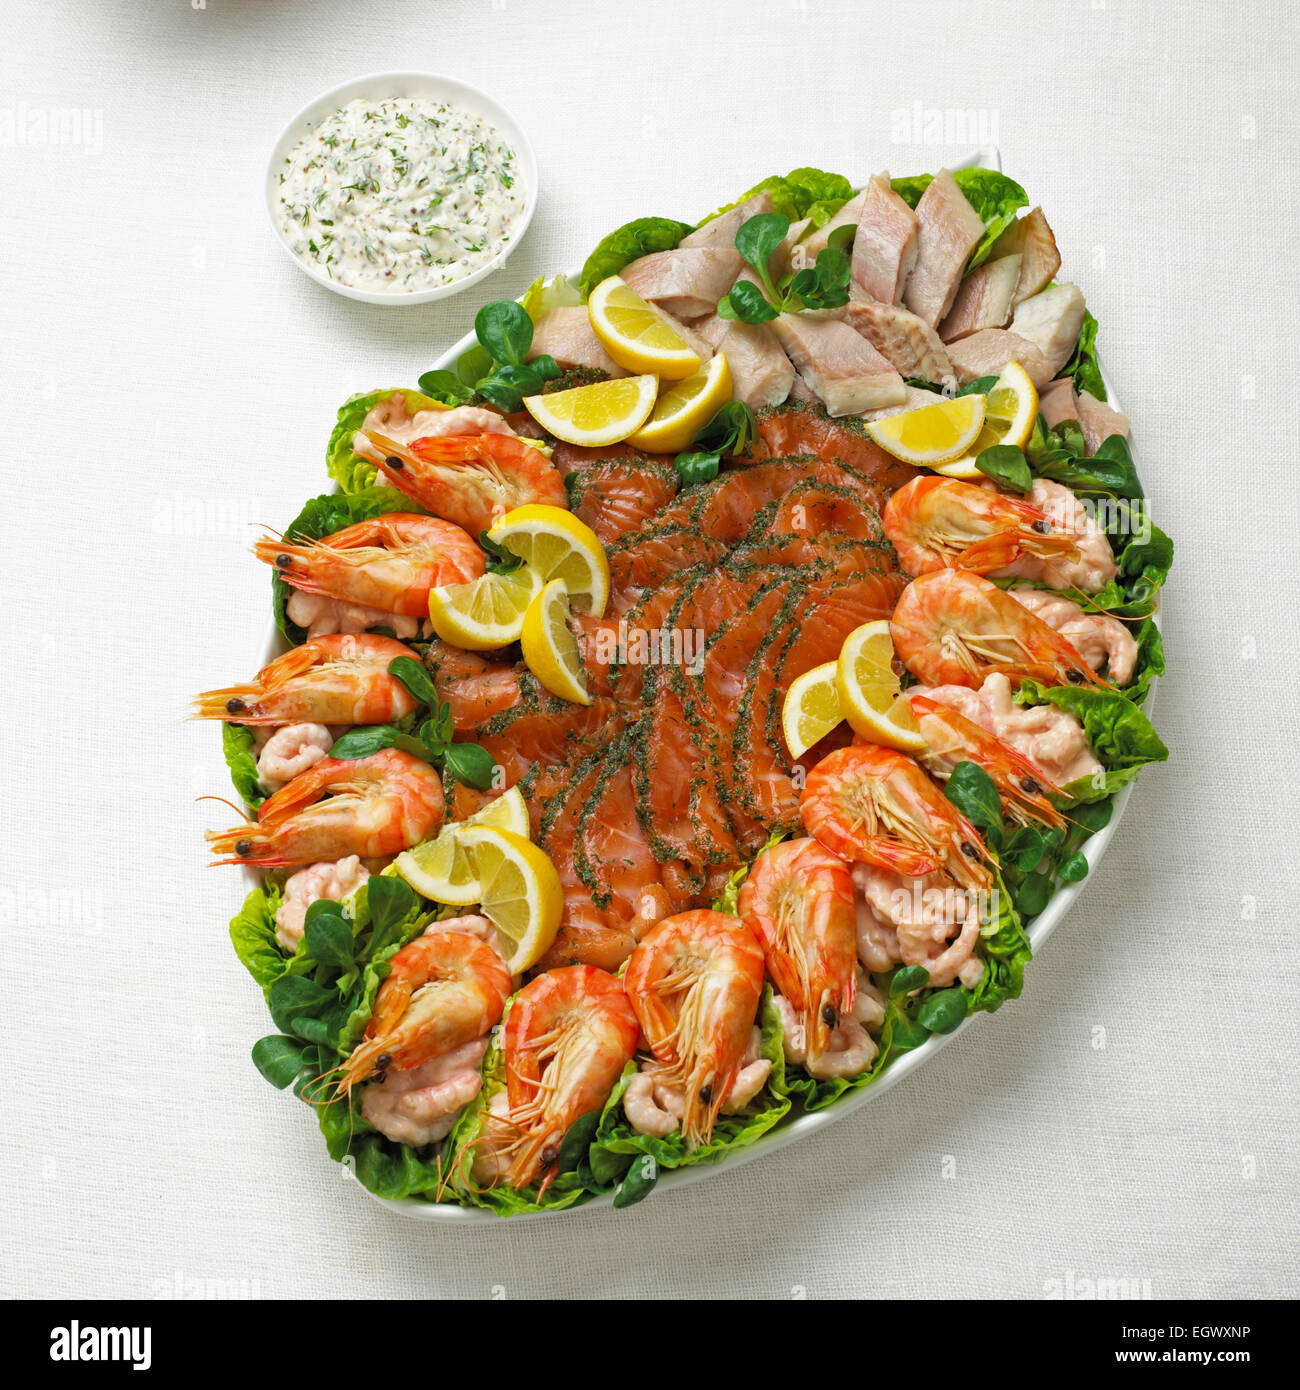 Smoked Fish Platter High Resolution Stock Photography And Images Alamy